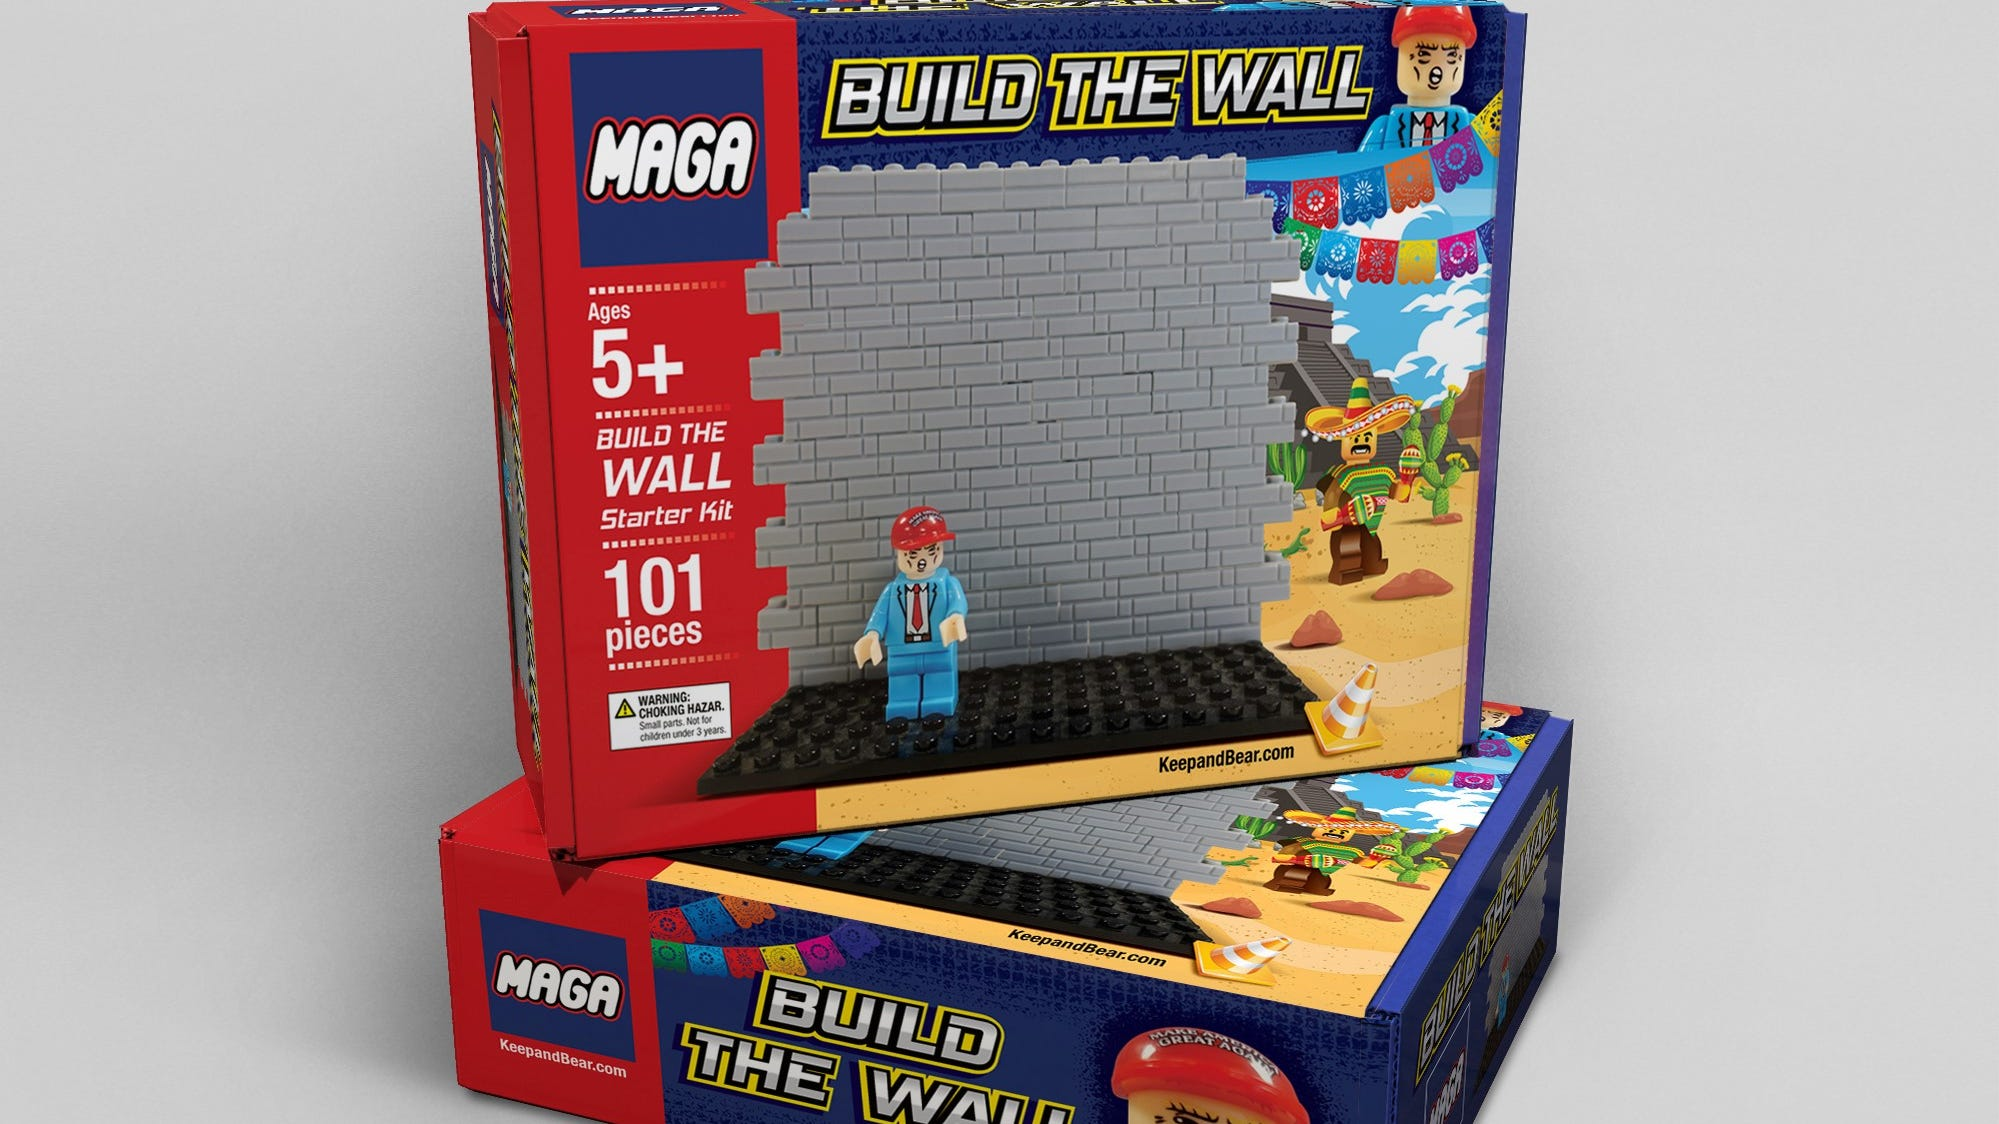 """Keepandbear.com, conservative retailer, will soon begin shipping a """"build the wall"""" toy that would allow children or adults to use building blocks to construct a border wall."""